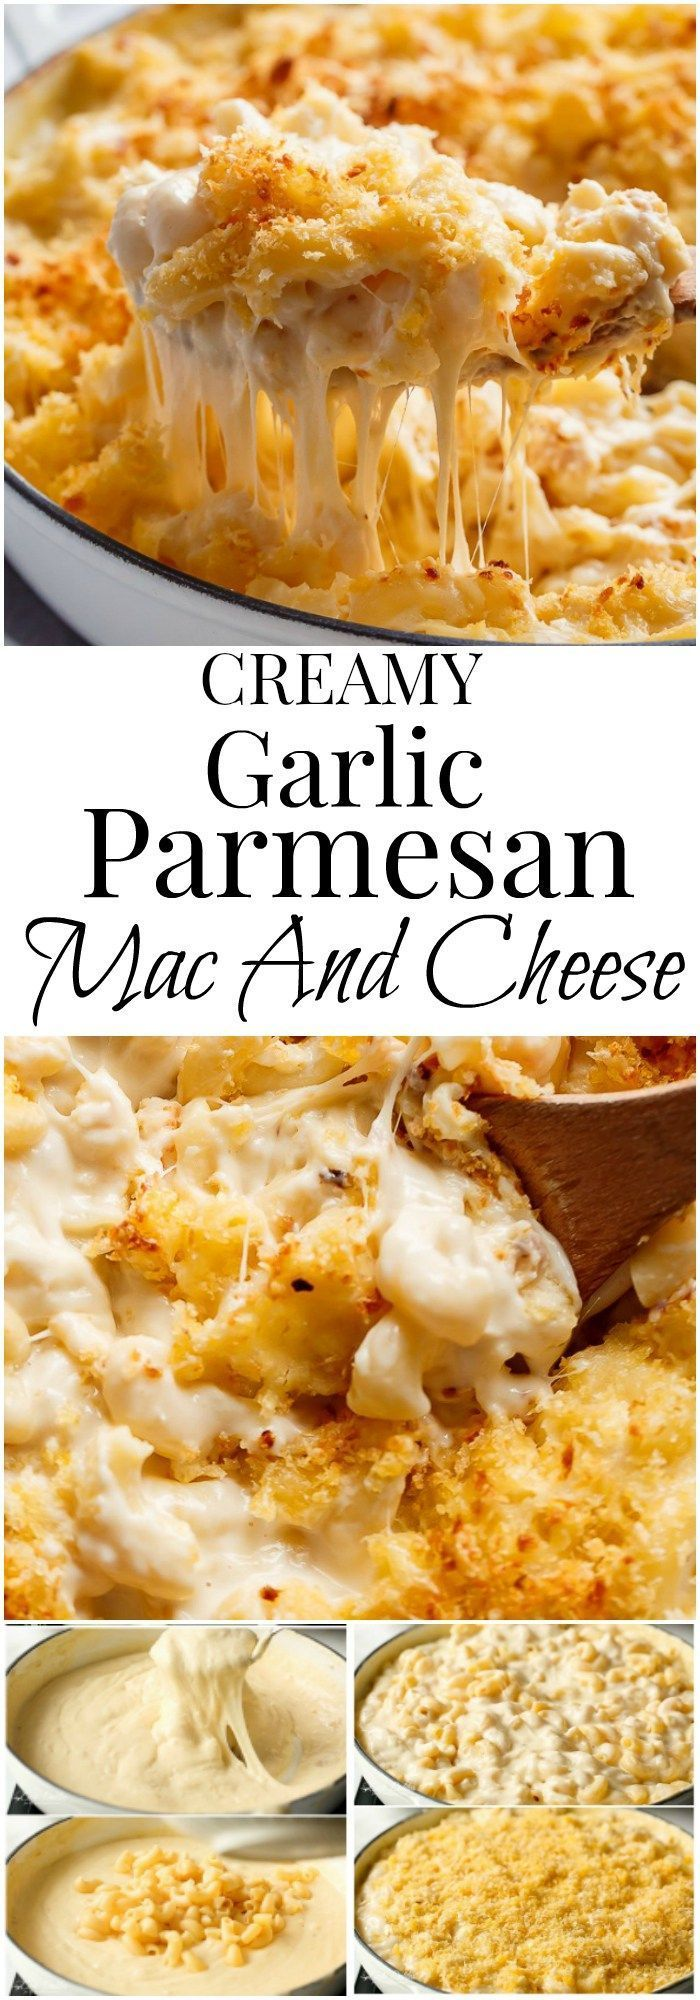 Garlic Parmesan Mac And Cheese is better than the original! A creamy garlic parm…